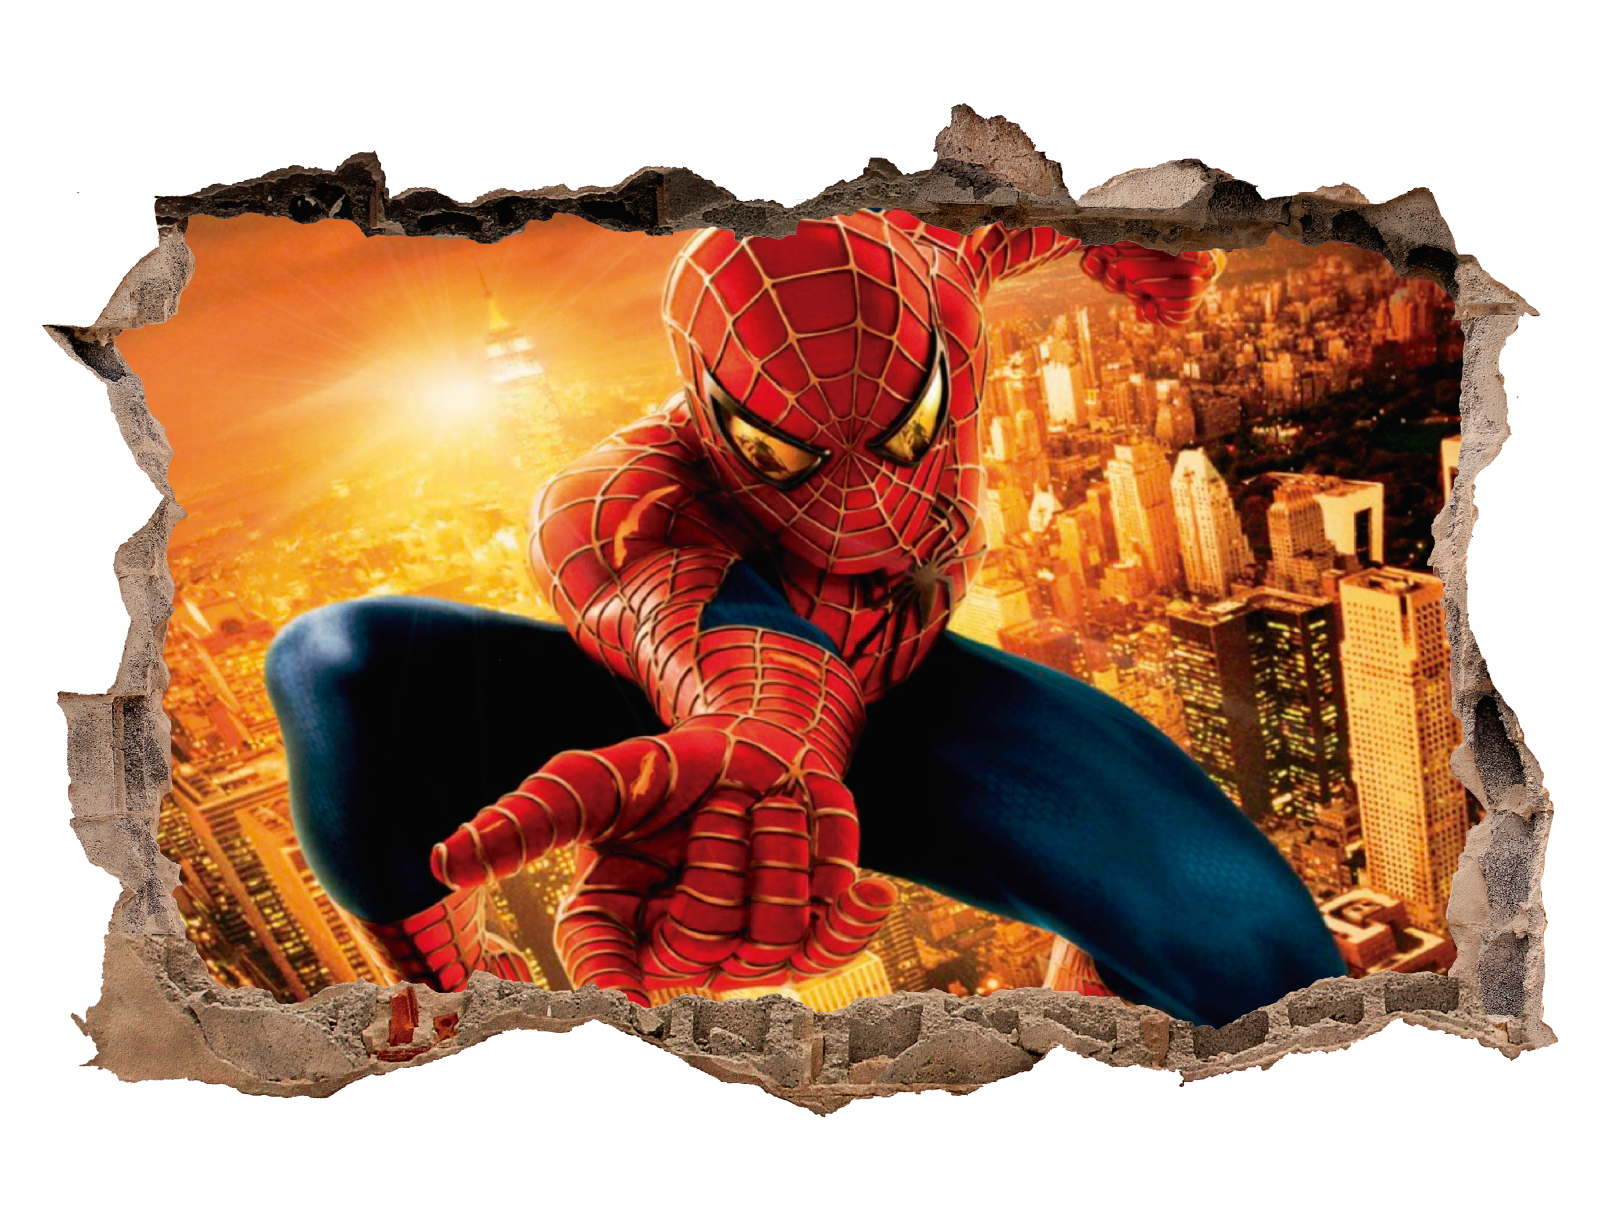 VD-MUR-0011 SPIDERMAN